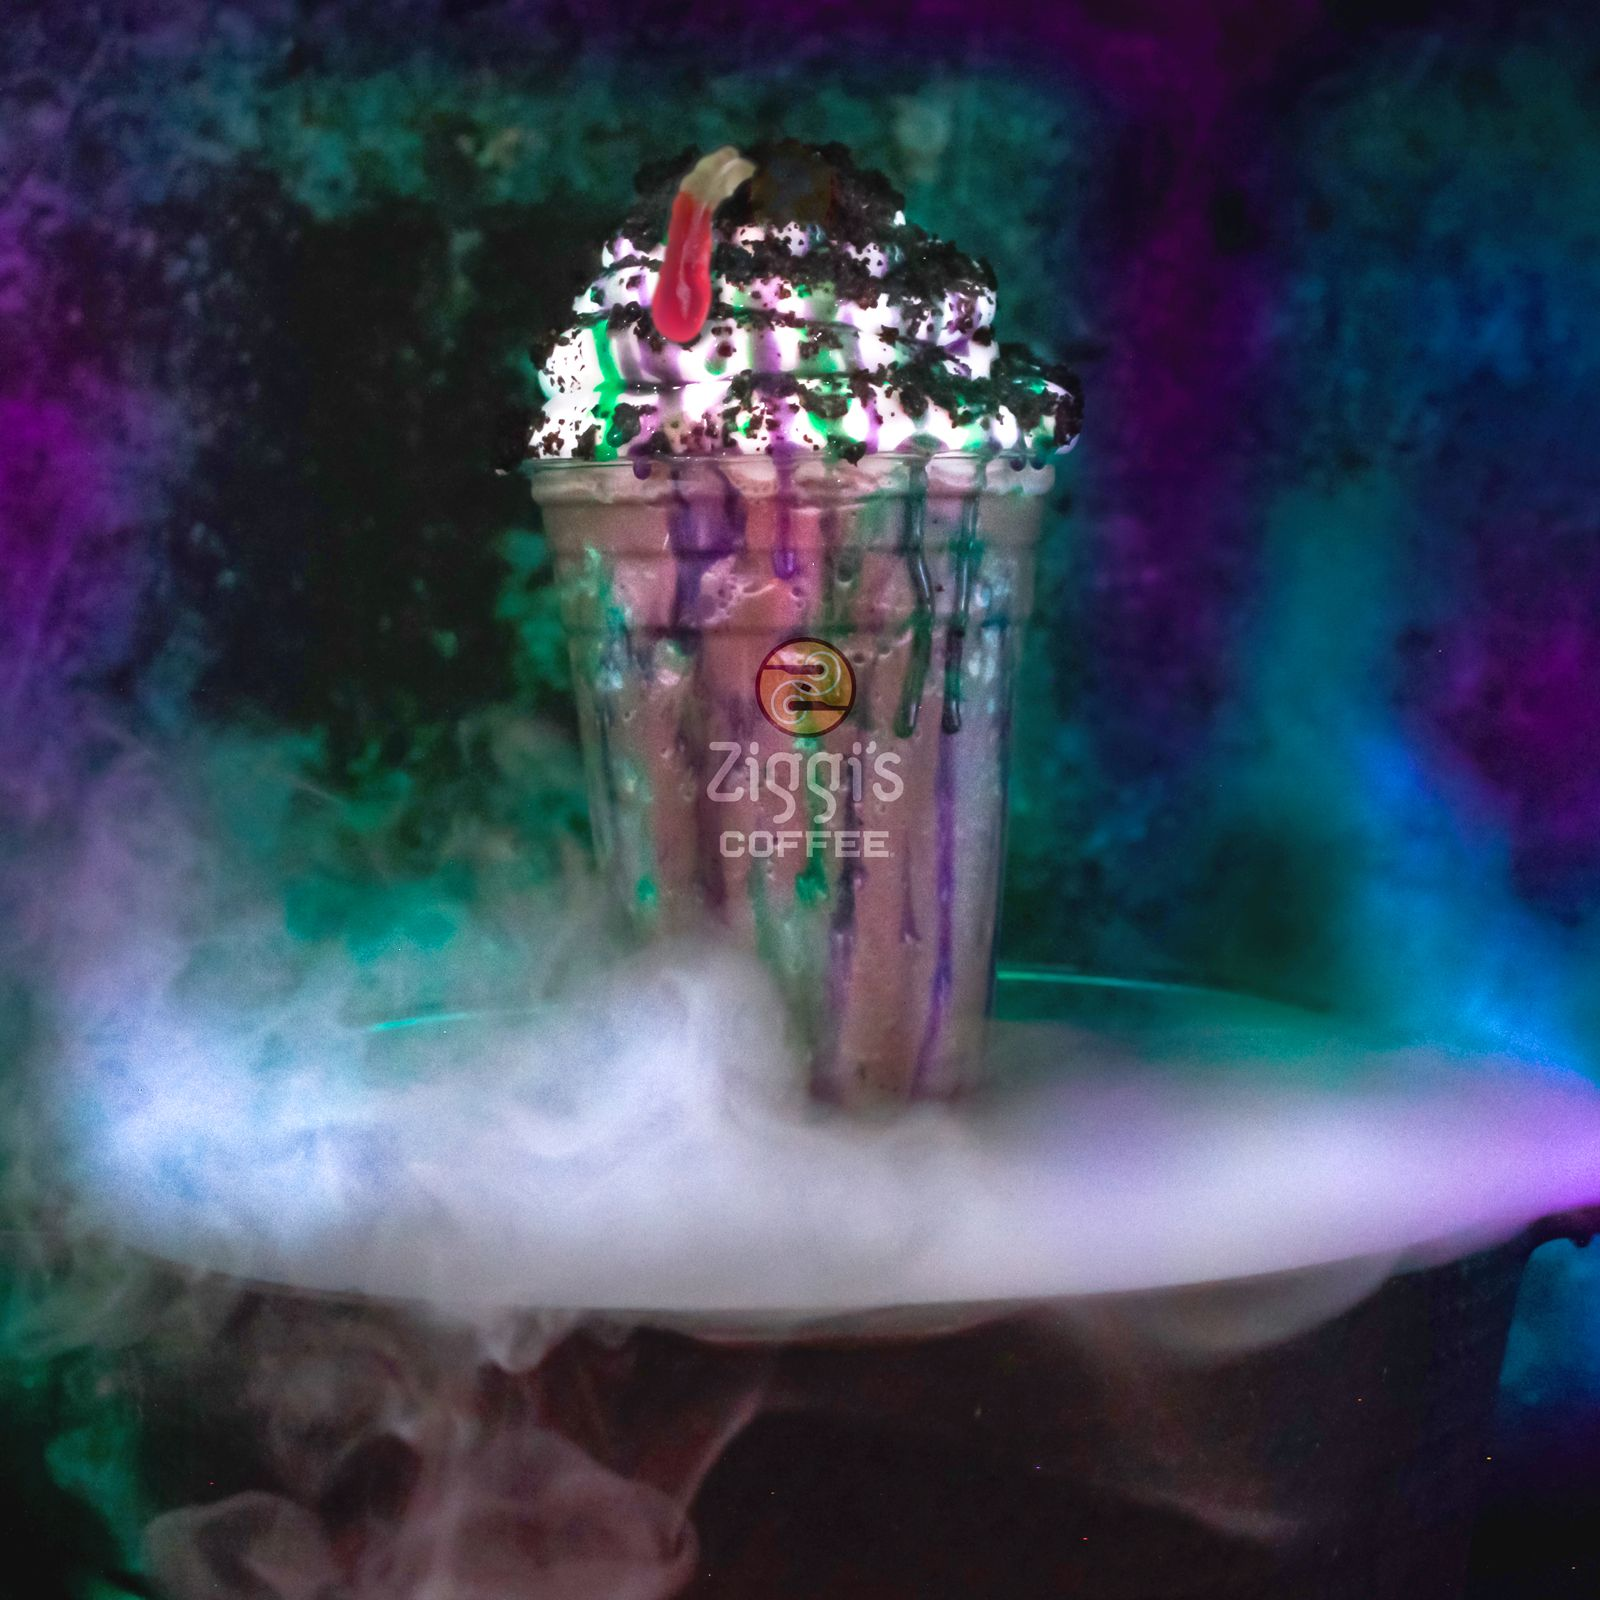 Something Wickedly Delicious This Way Comes - Ziggi's Coffee Announces Halloween-Themed Drink